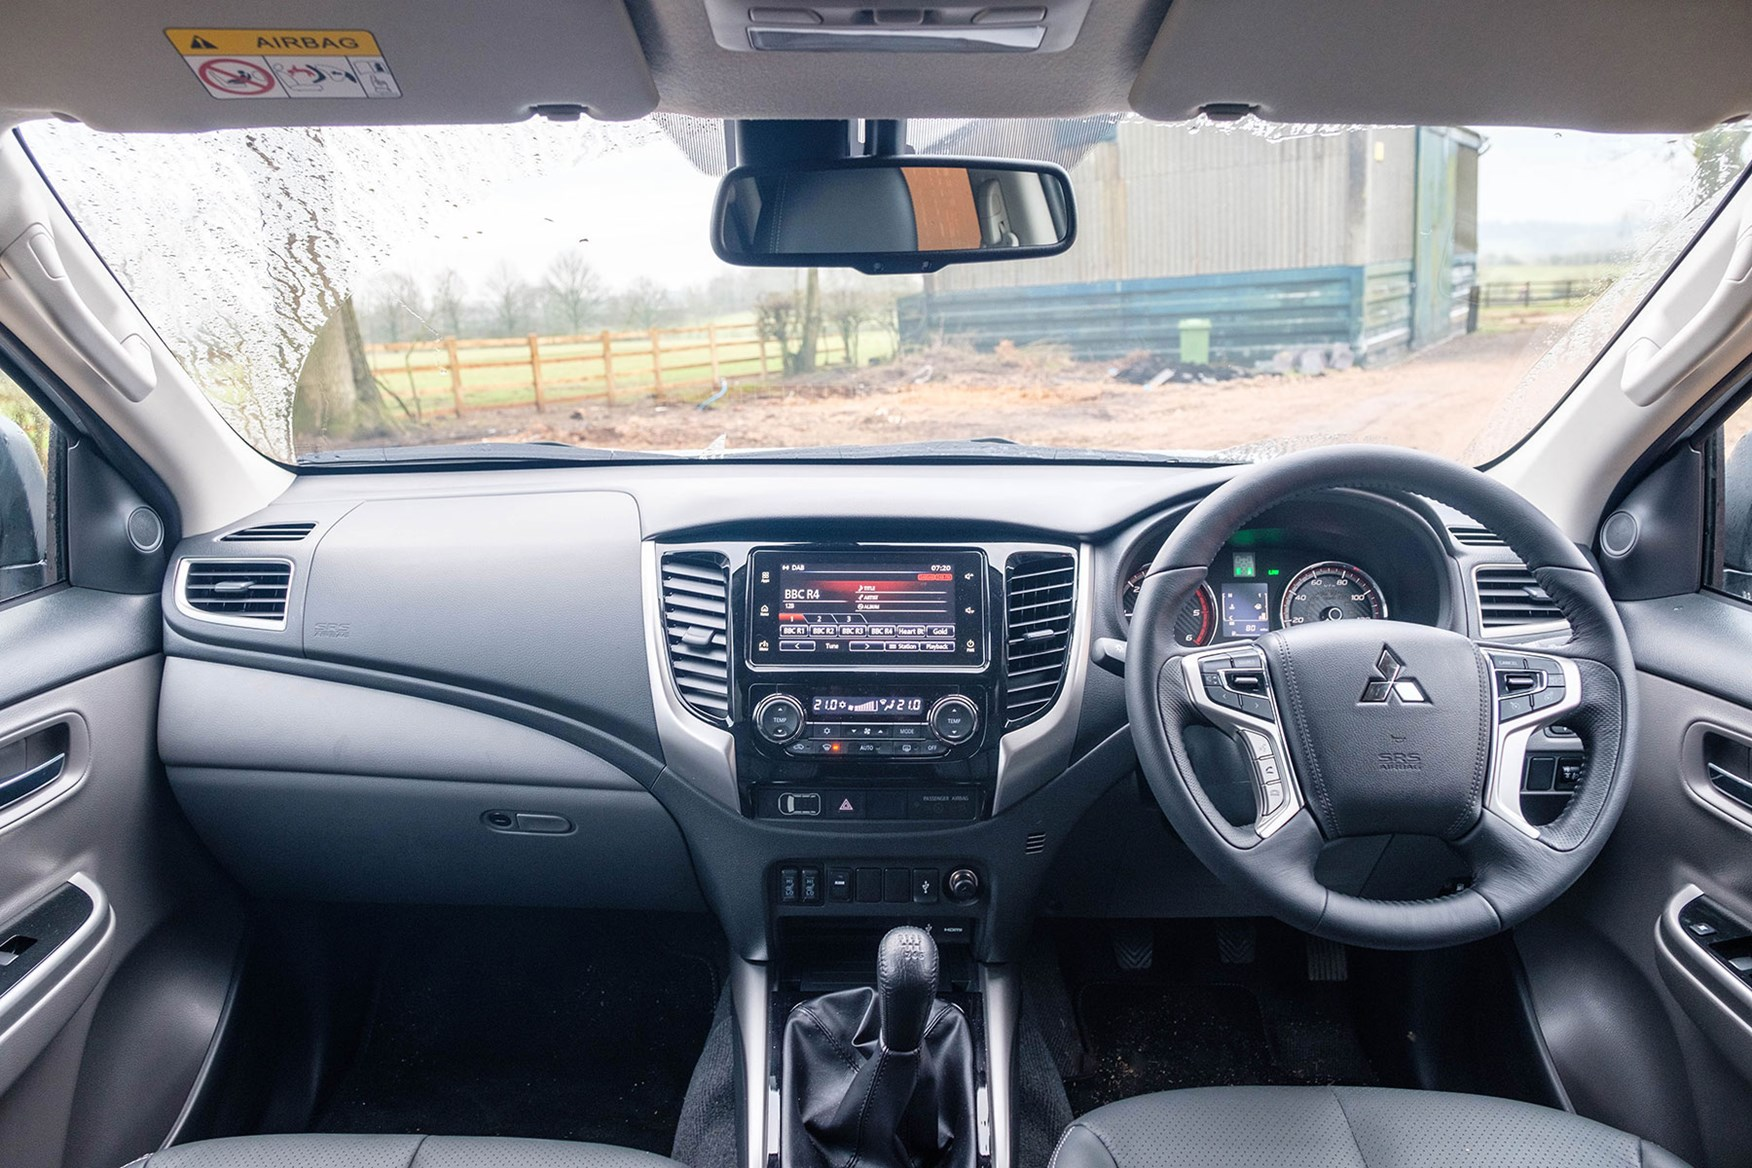 Mistubishi L200 Warrior 2018 review - cab interior with no infotainment system